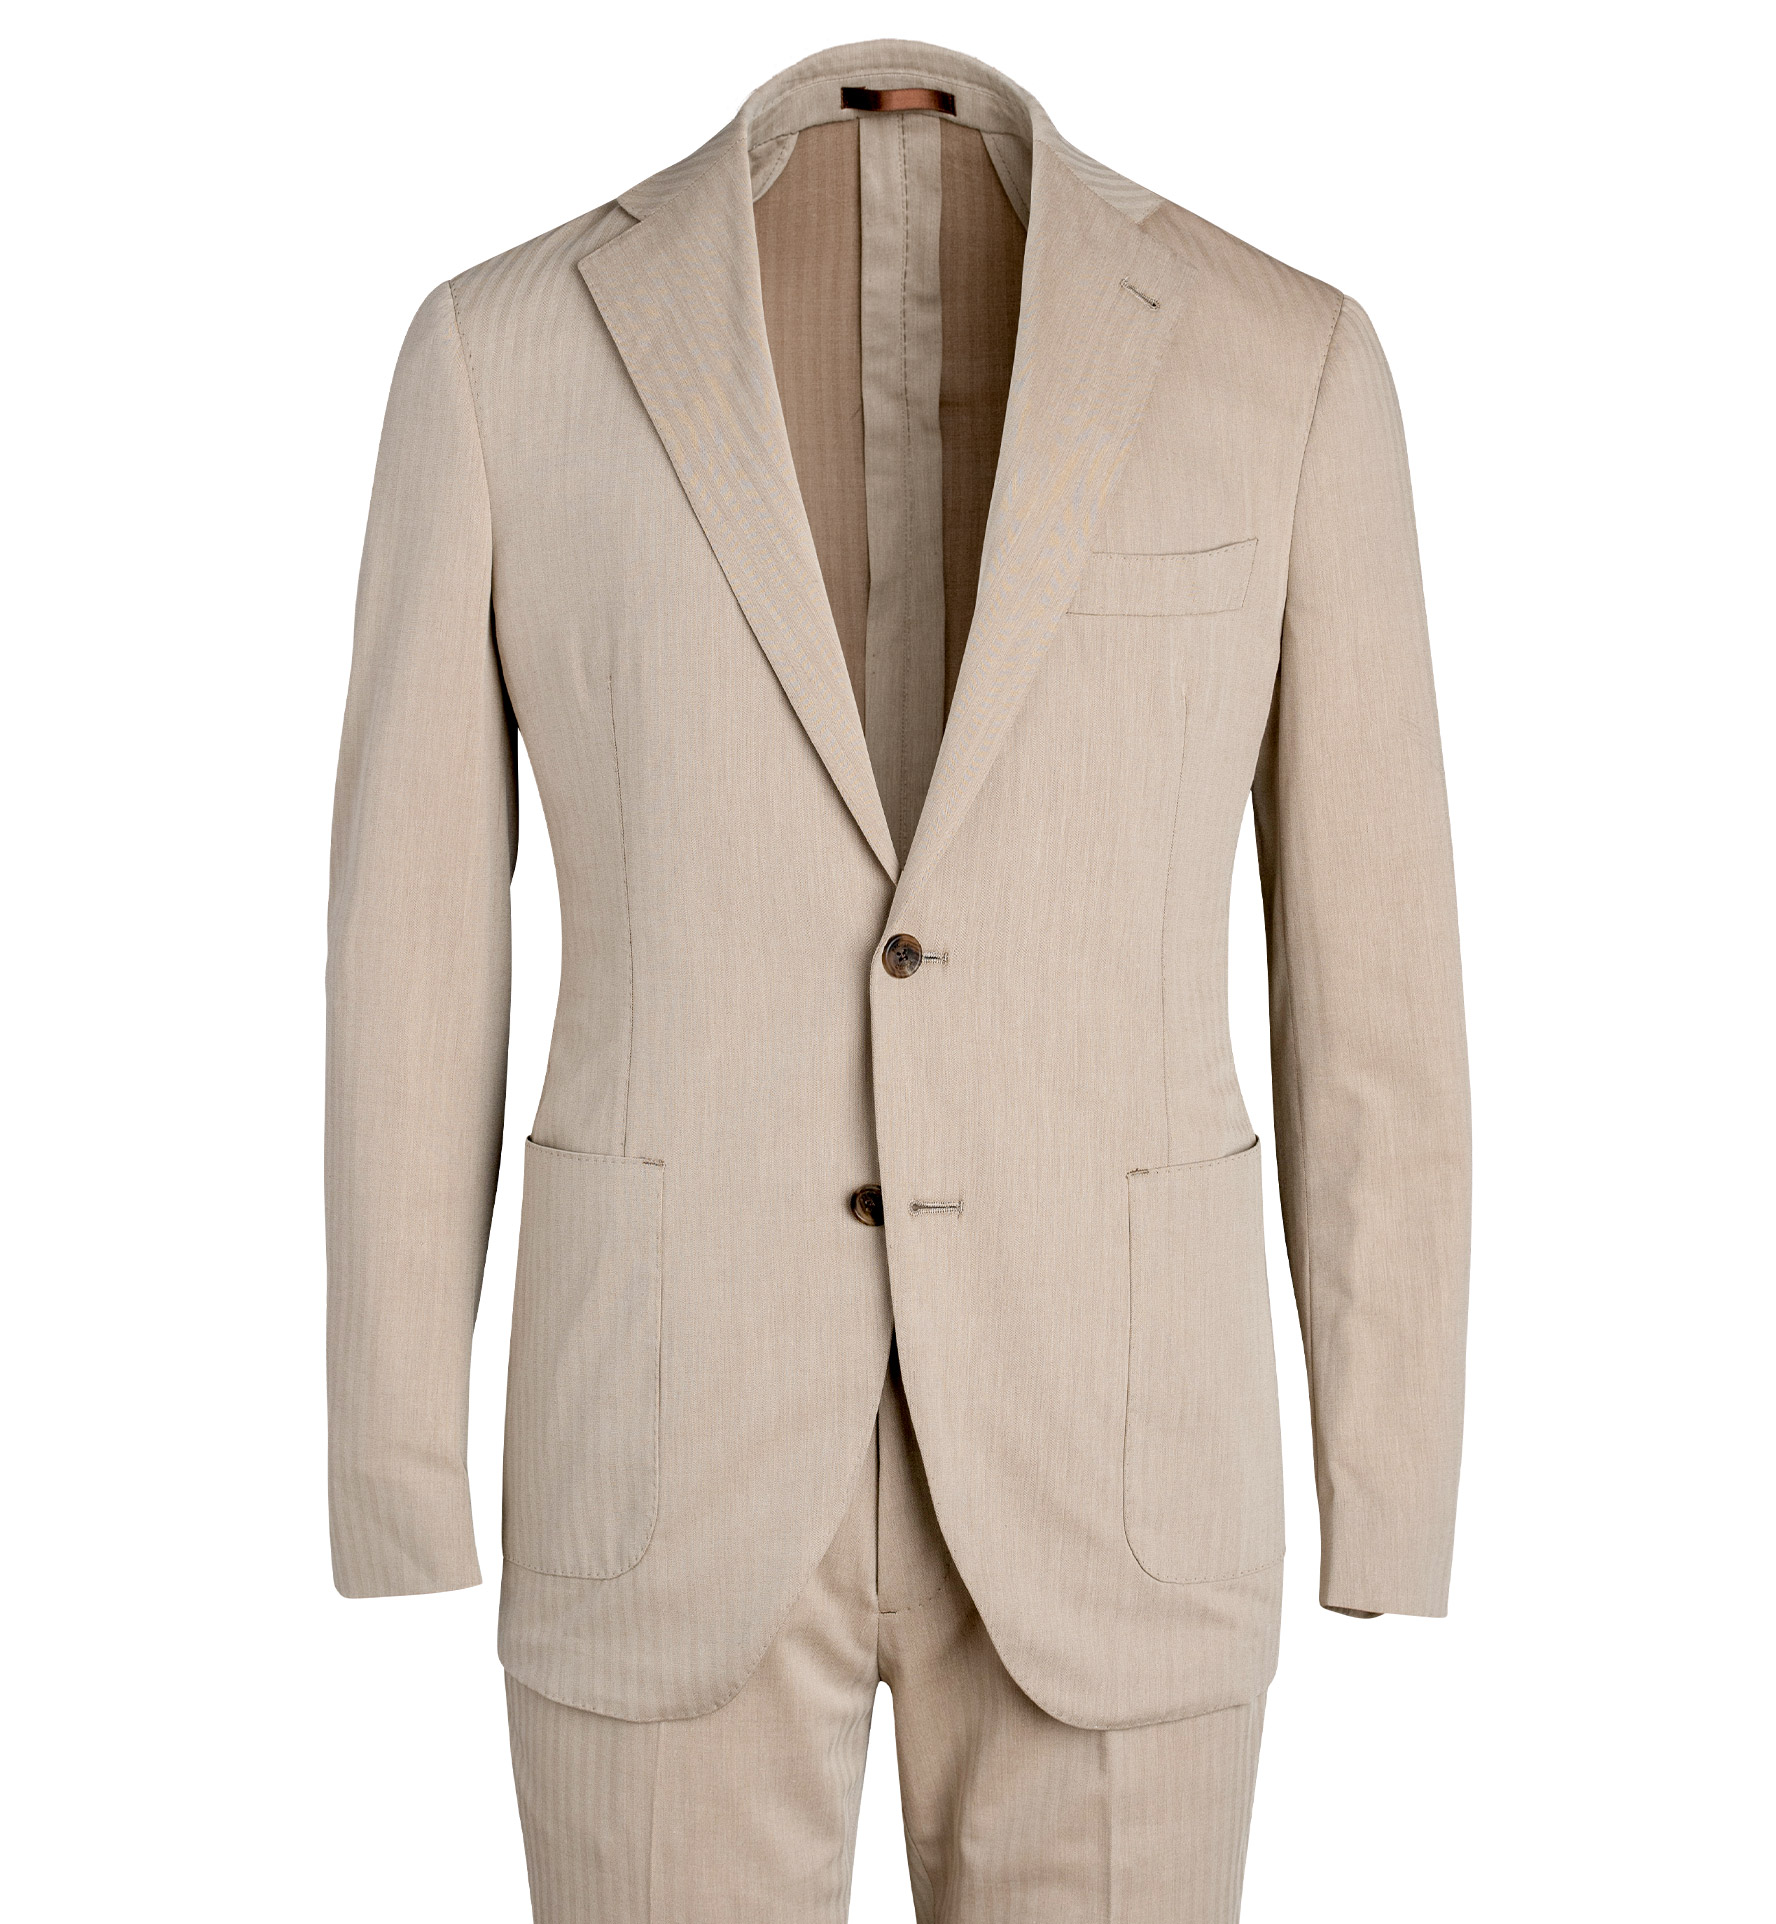 Zoom Image of Bedford Beige Wool and Cotton Solaro Suit Jacket